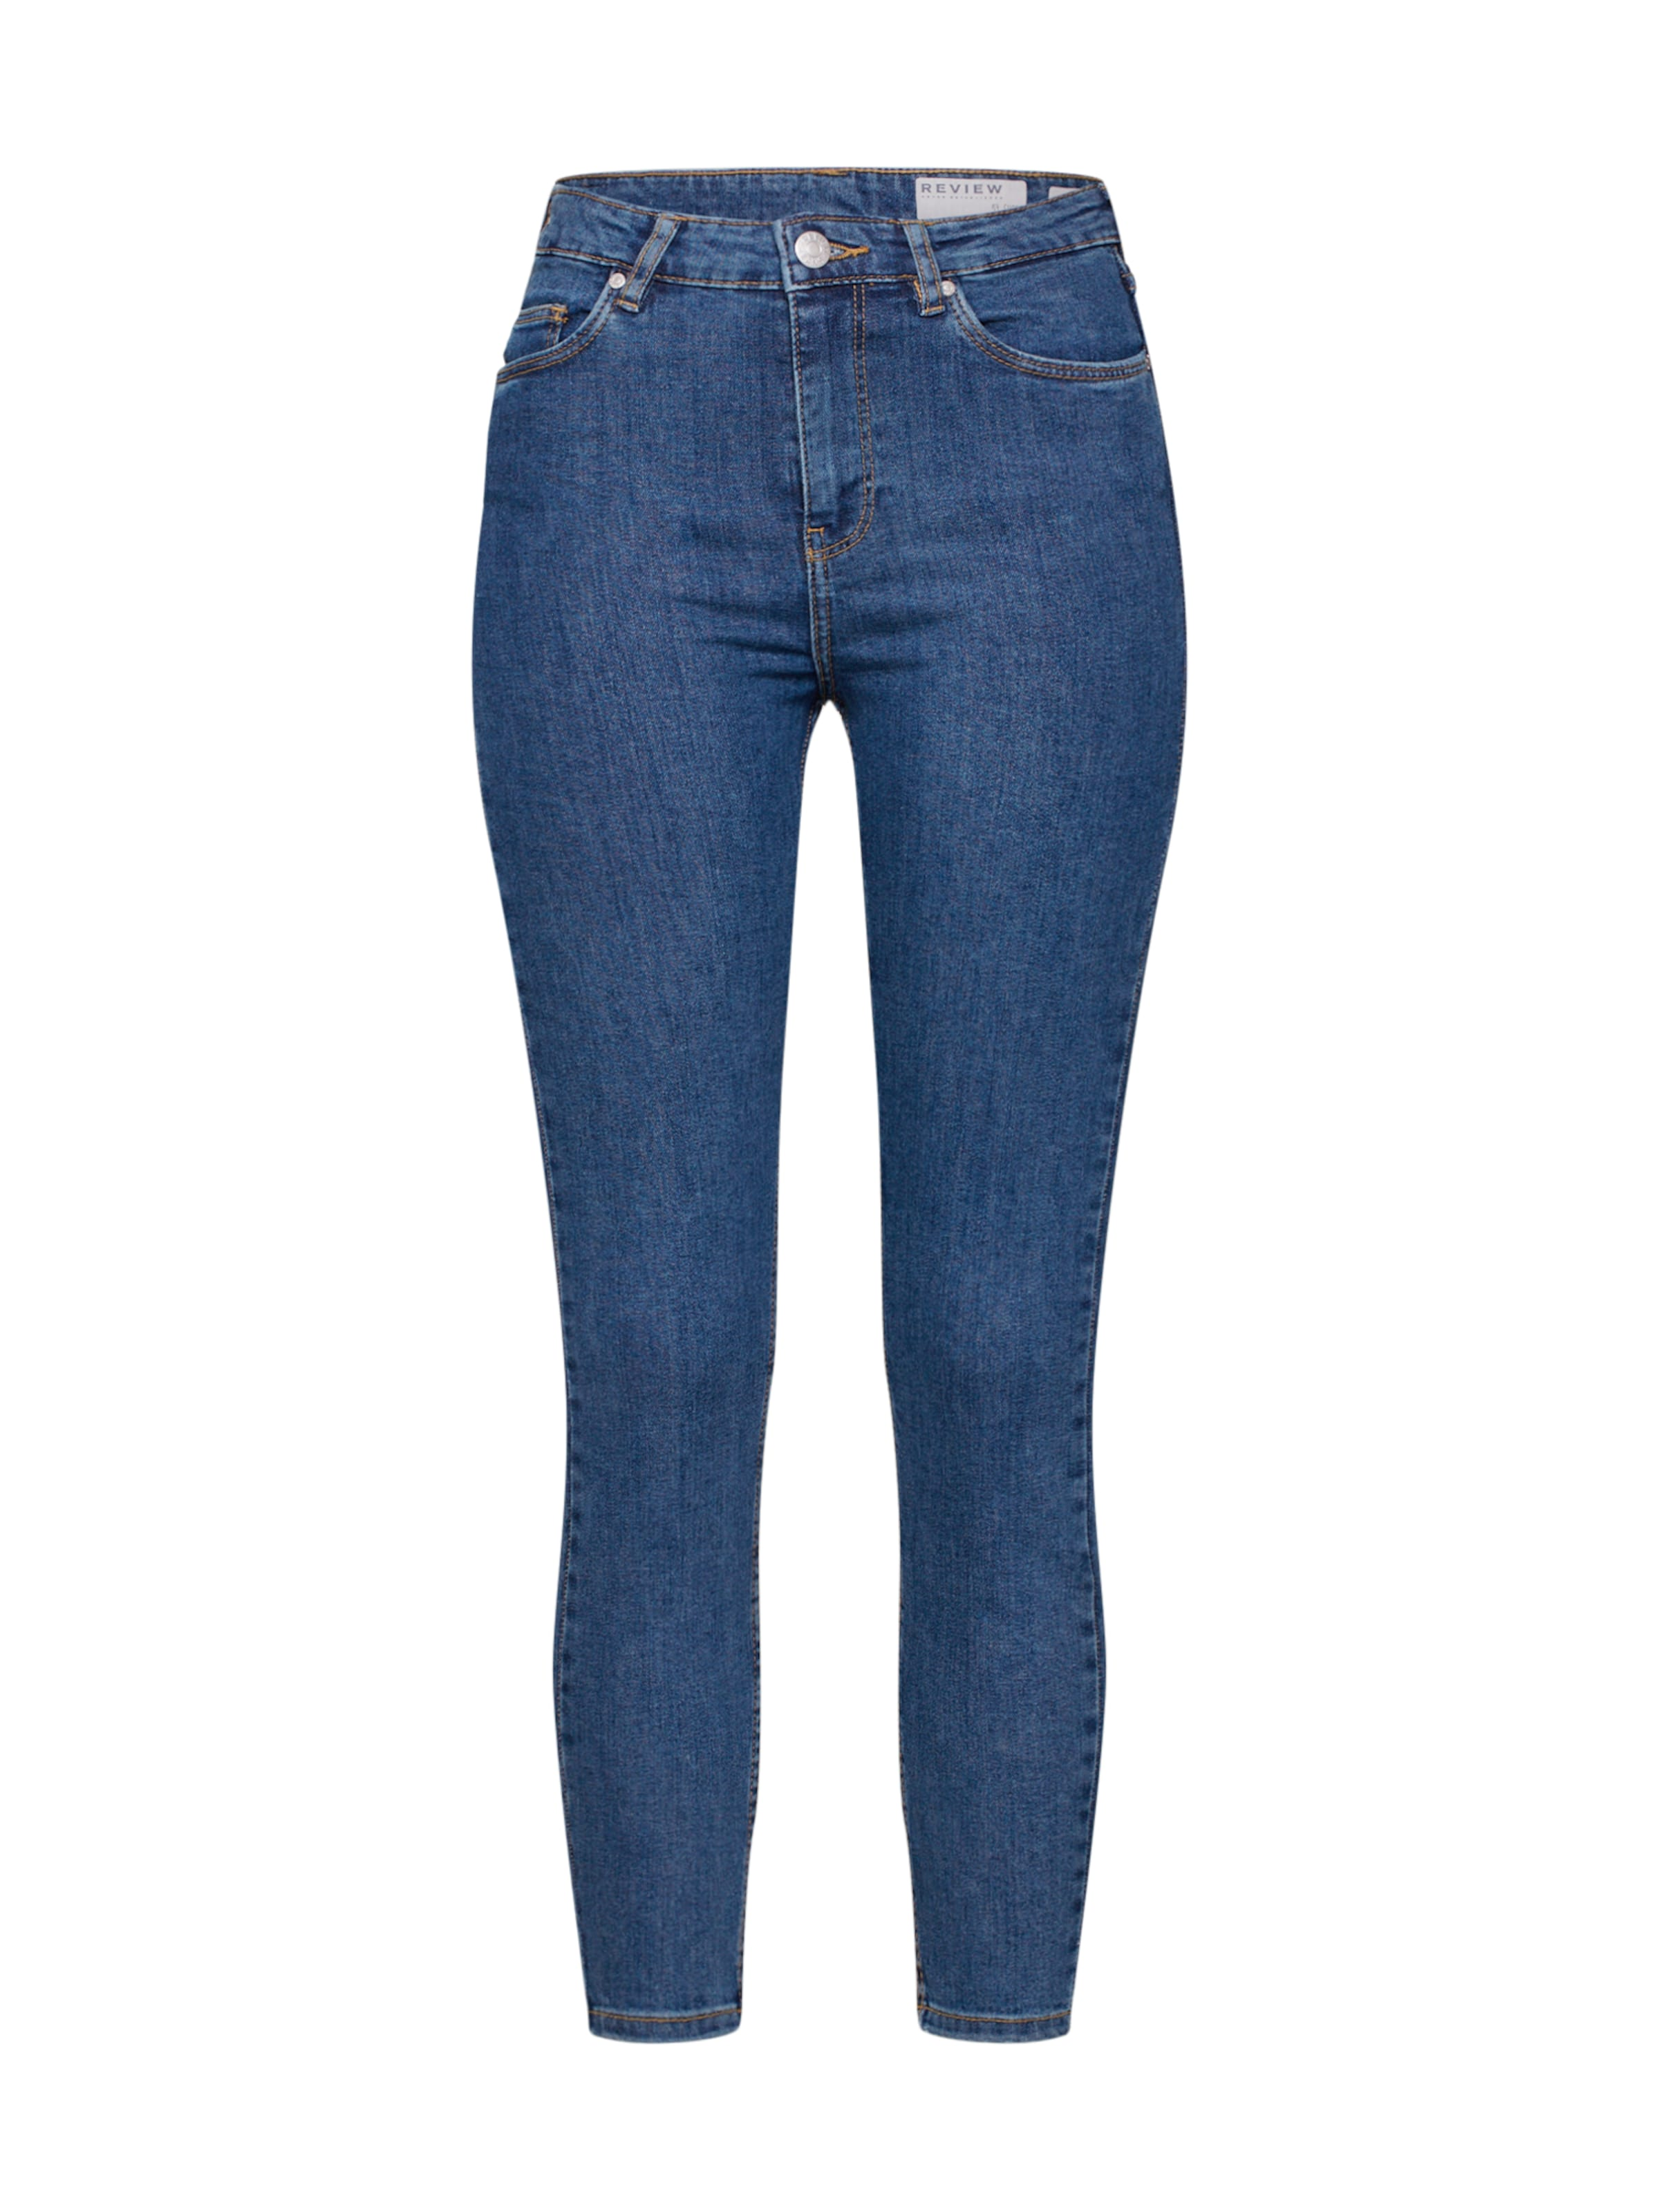 'hw Authenticblue' In Review DamenJeans Denim Blue W29YEHID